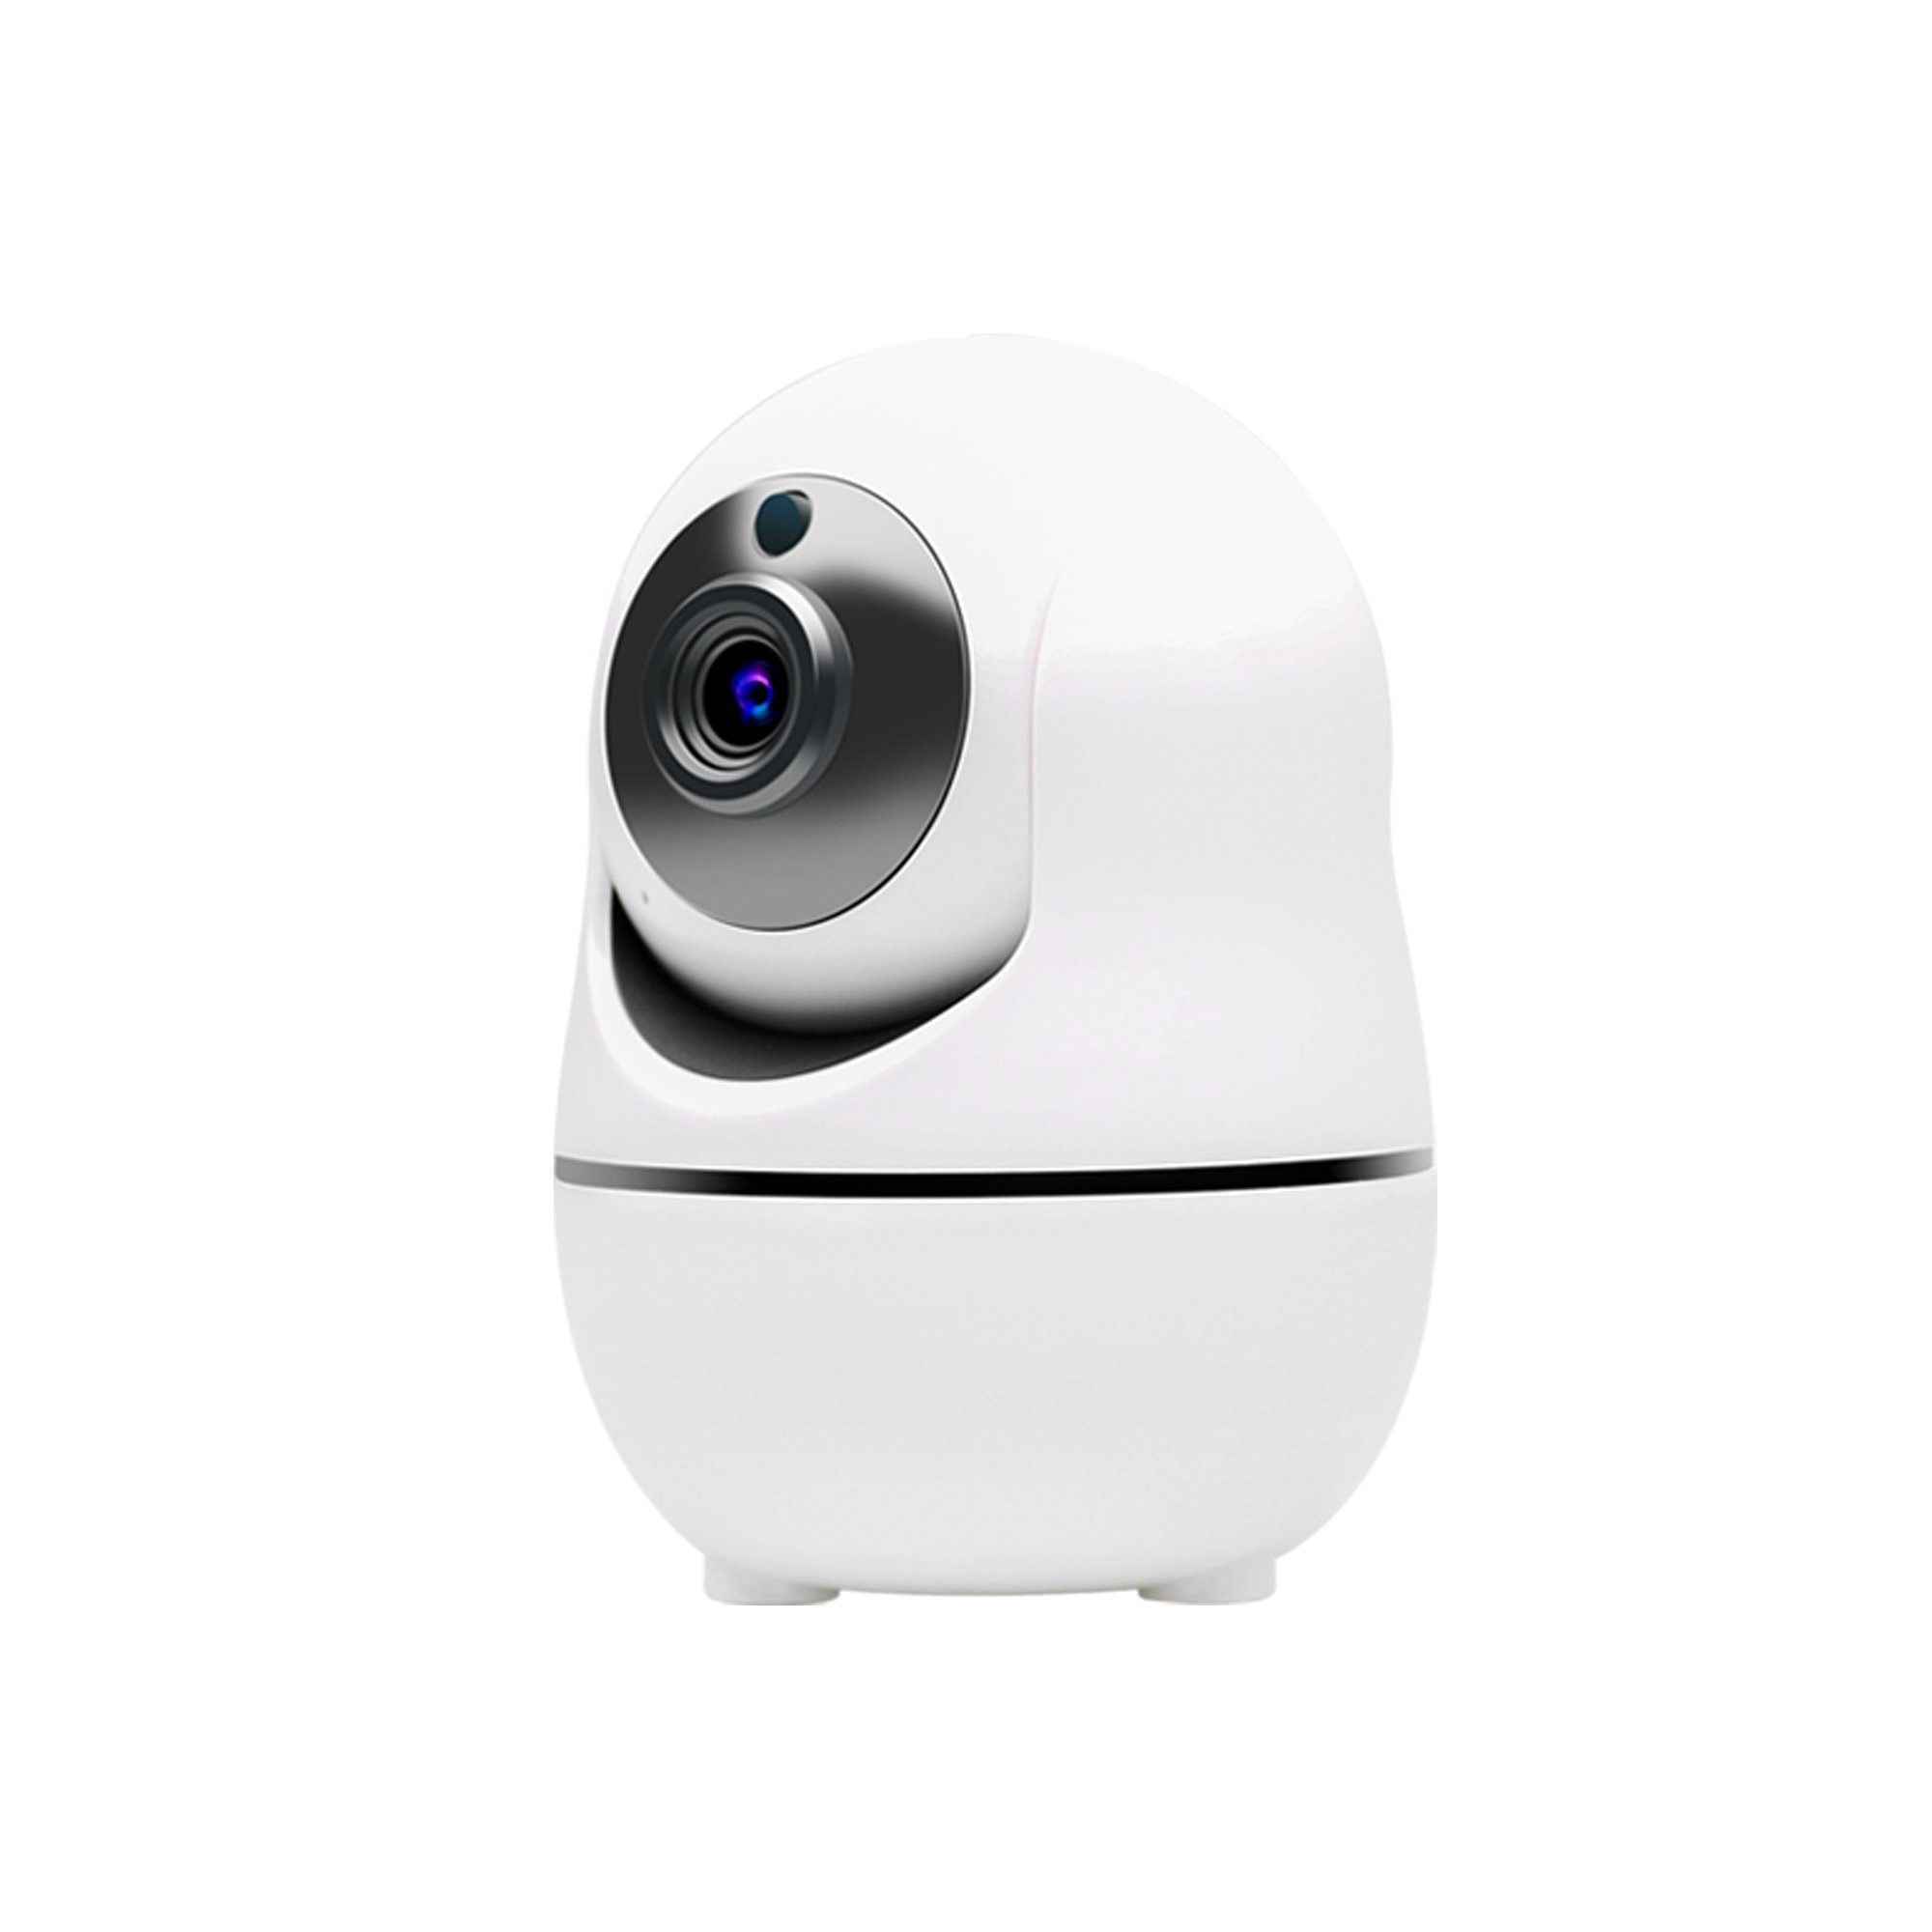 Ouvis VZ1 1080 HD Pan/Tilt/Zoom Wireless WiFi Security Camera, Smart Home IP Camera, Video Surveillance System with Motion Detection, Siren Alarm, Two-way Audio, Night Vision, and APP for Android/iPhone/iPad/Tablet, White